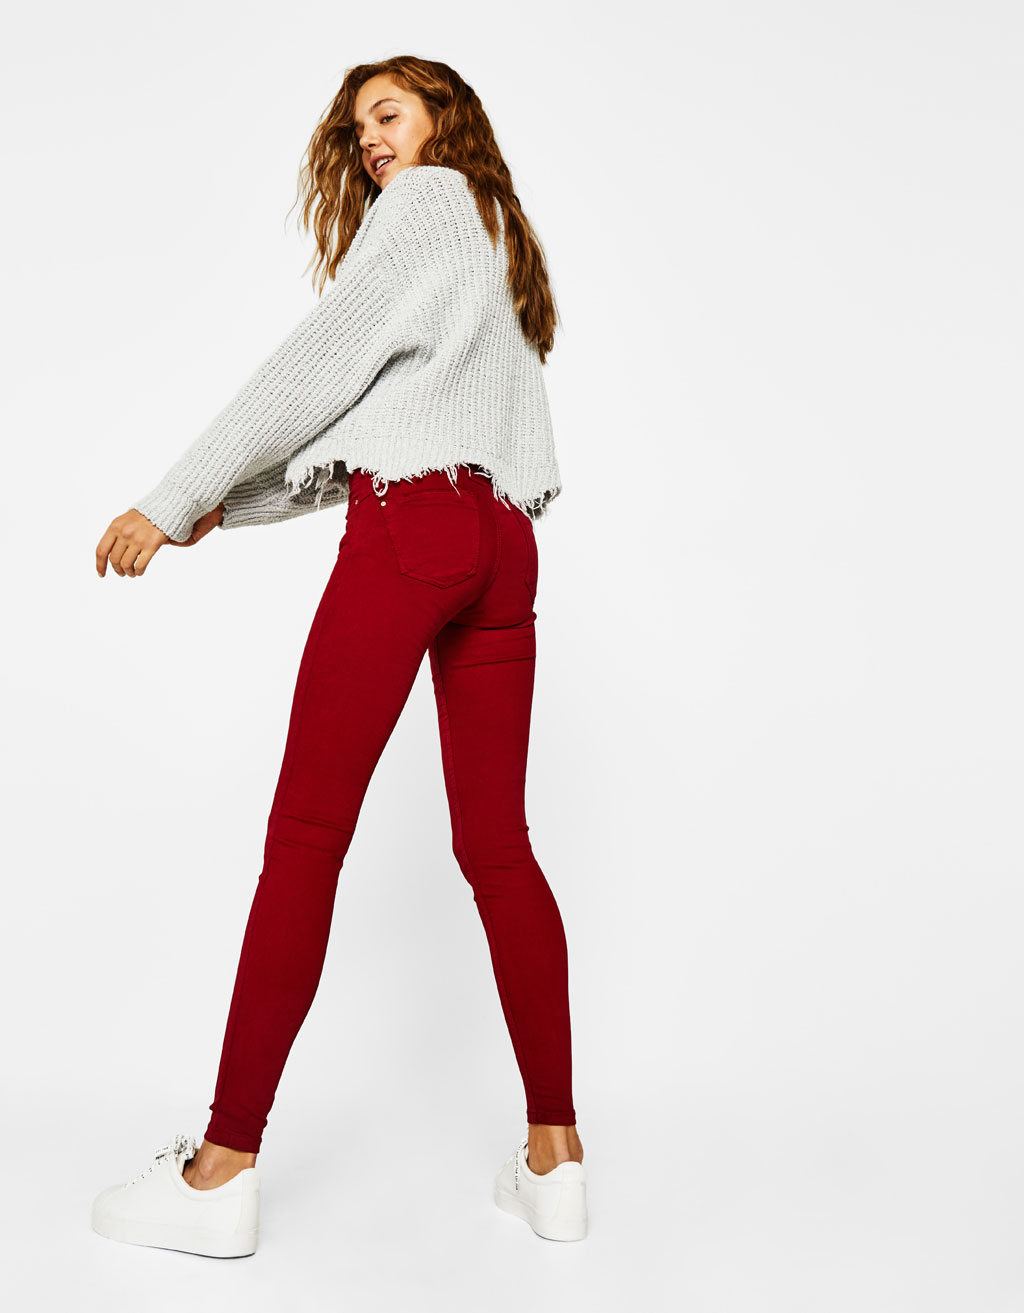 5-pocket push-up pants